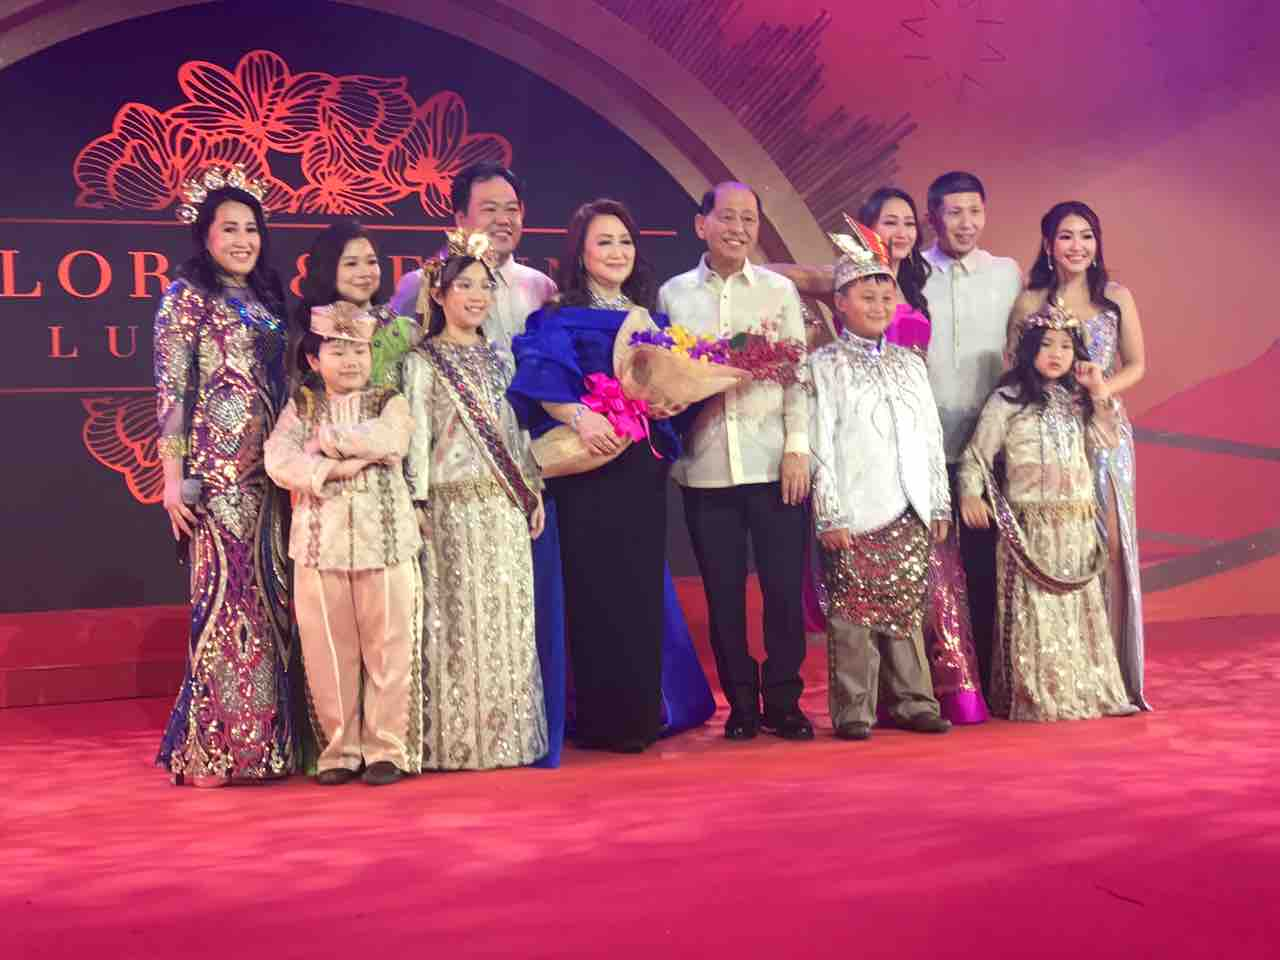 Enrique Chua joins his wife Flora and the rest of their family onstage.